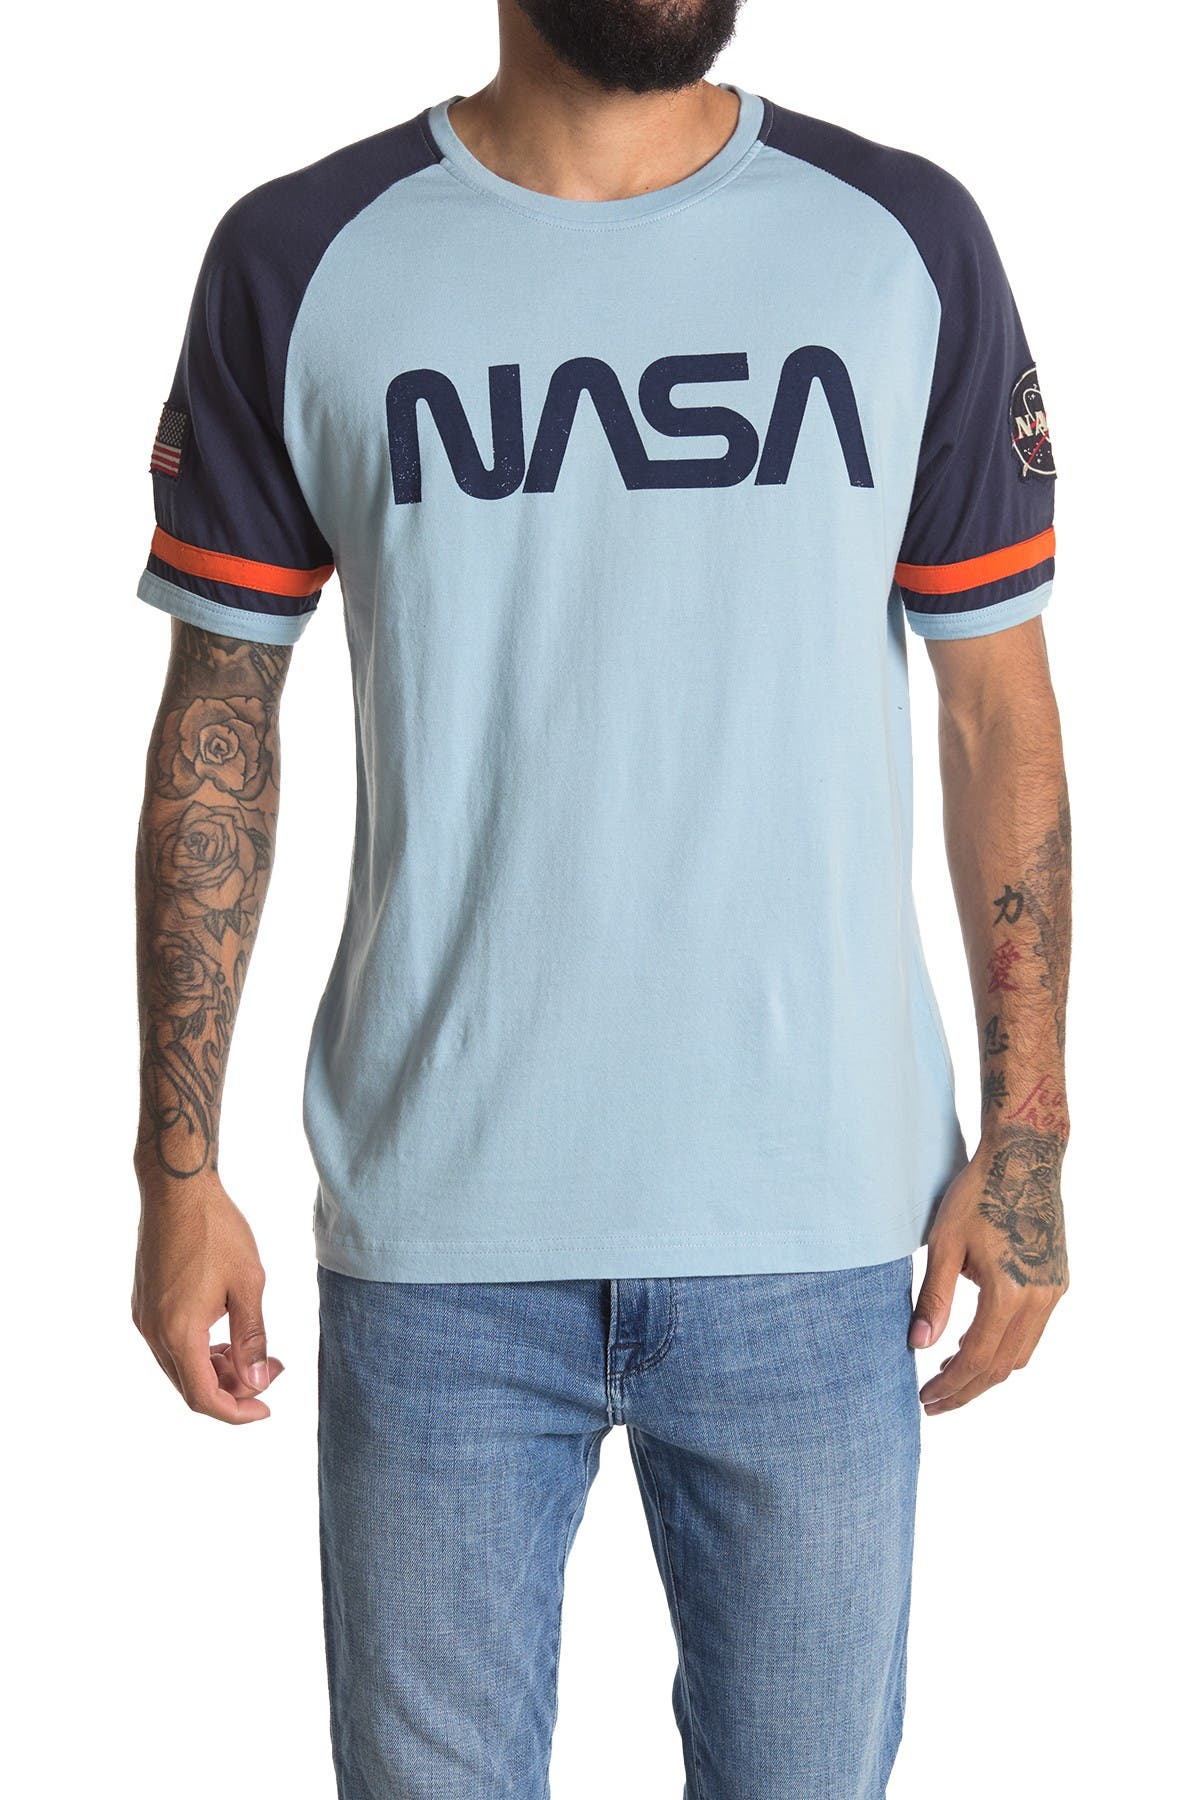 Image of American Needle Nasa Raglan Sleeve Crew Neck T-Shirt